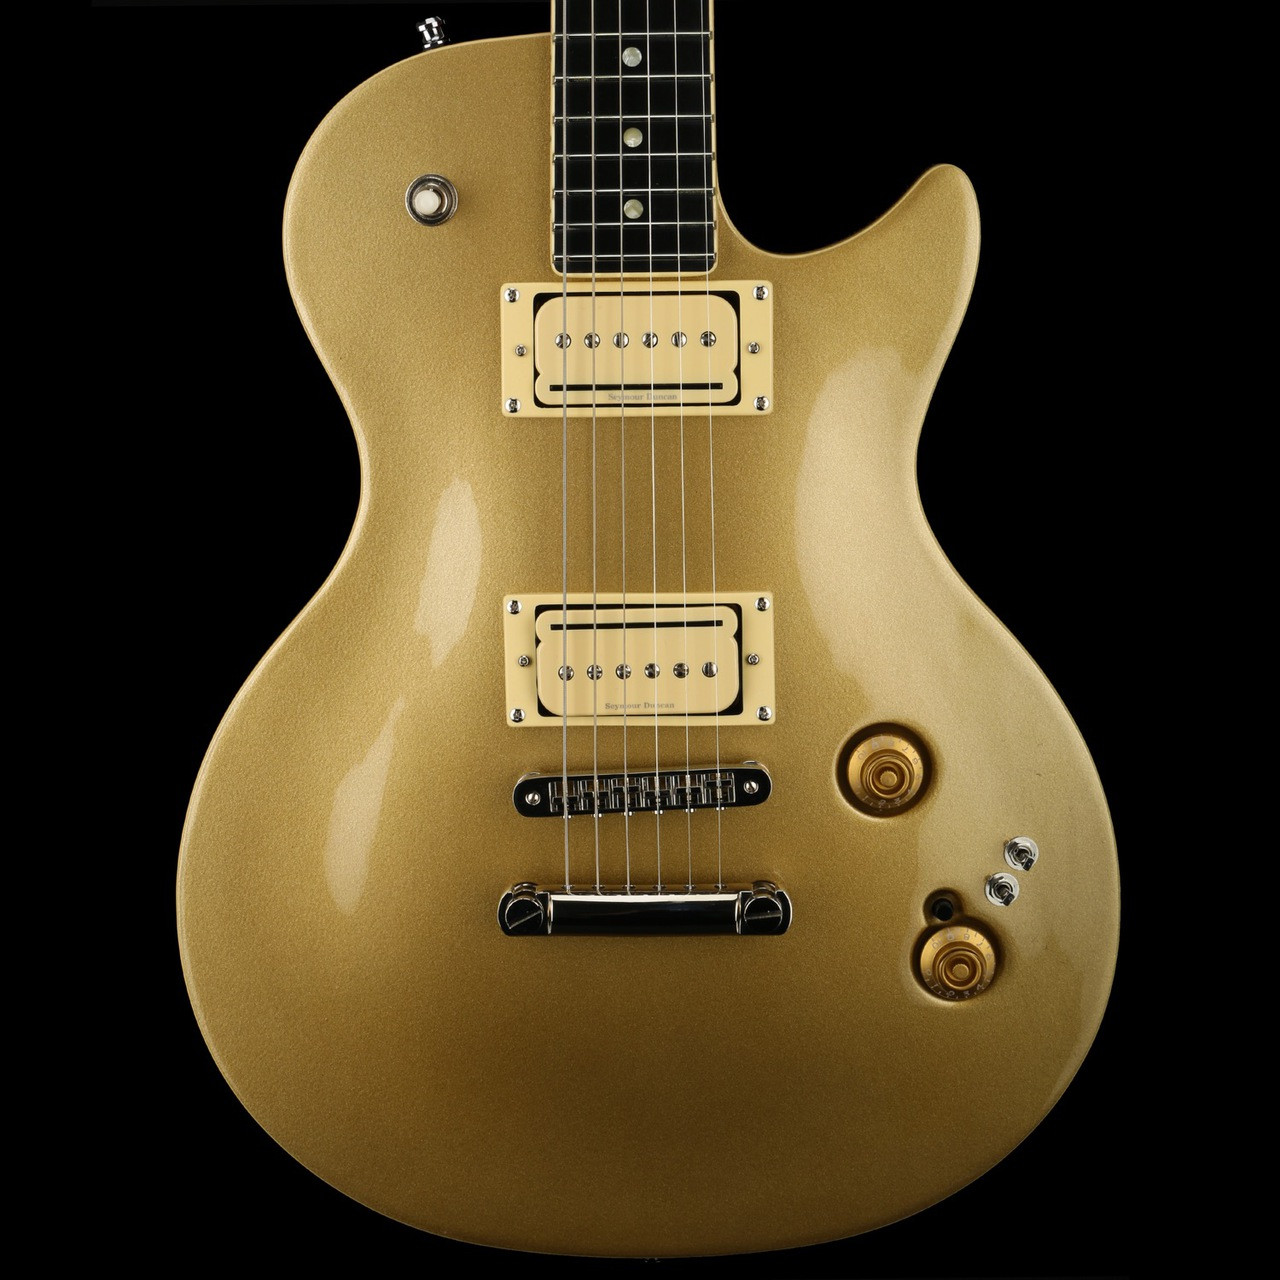 Godin Summit Classic CT Convertible, Seymour Duncan P-Rails in Gold HG with  Gigbag